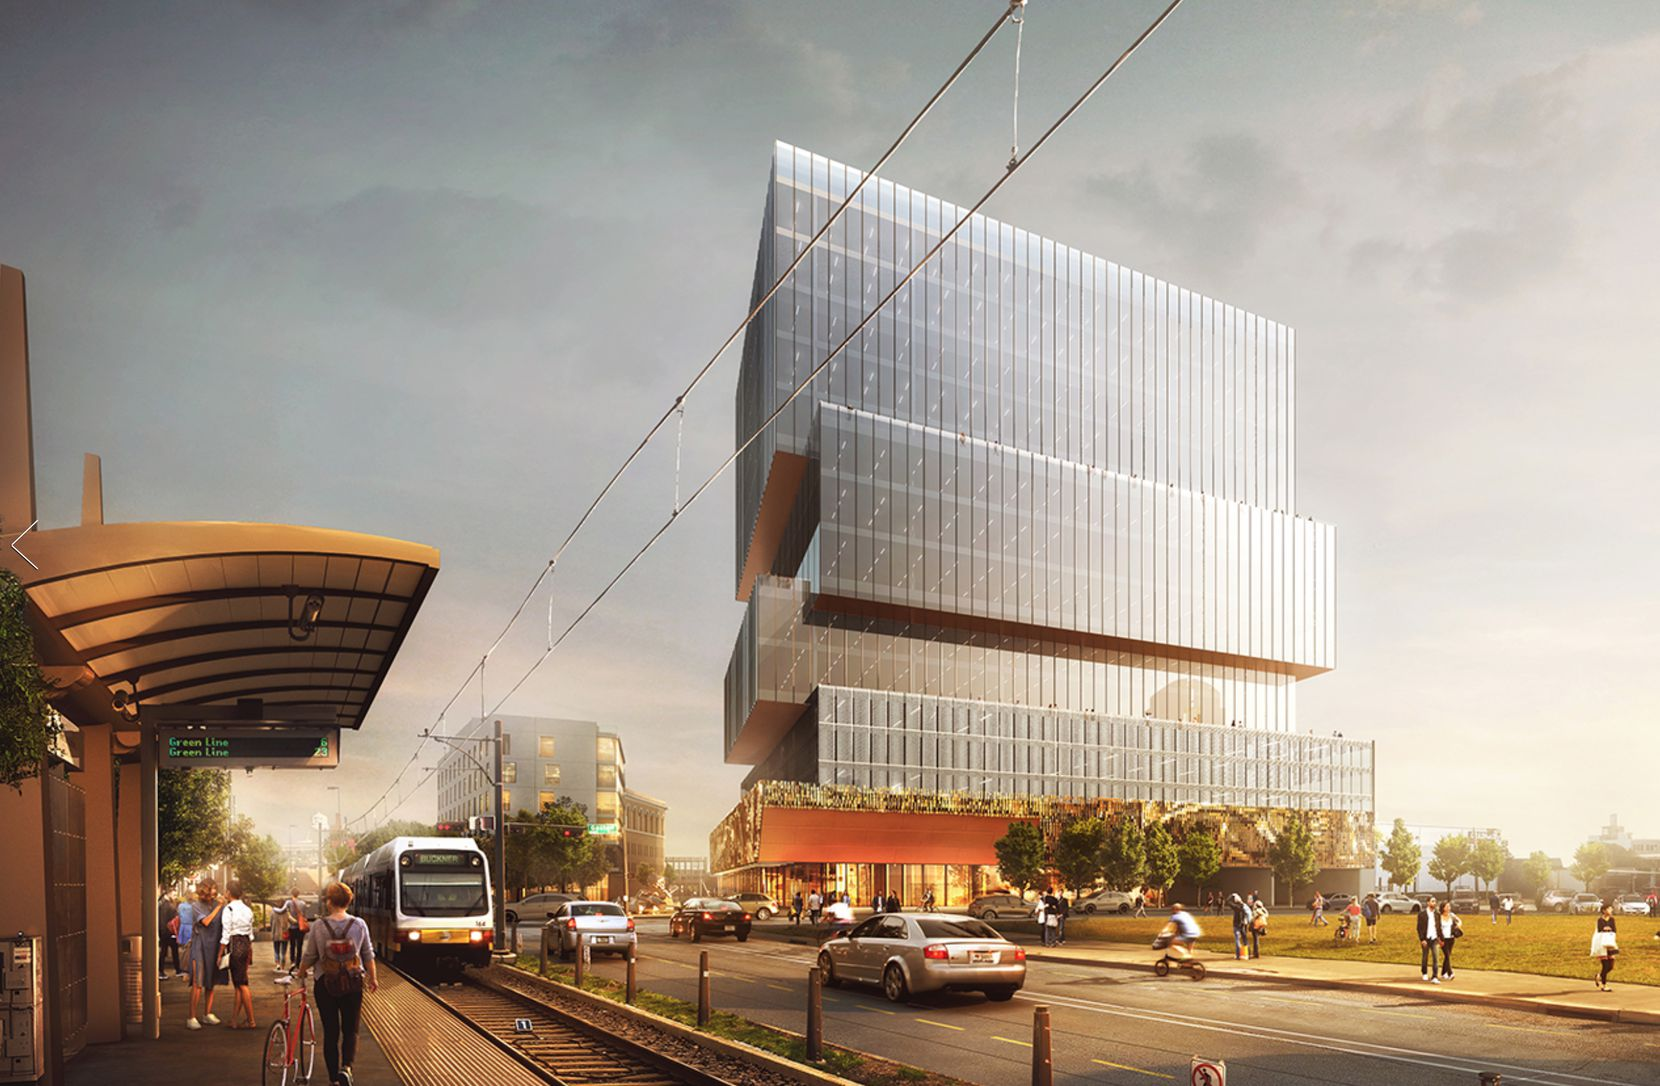 The Epic office tower opens next year.